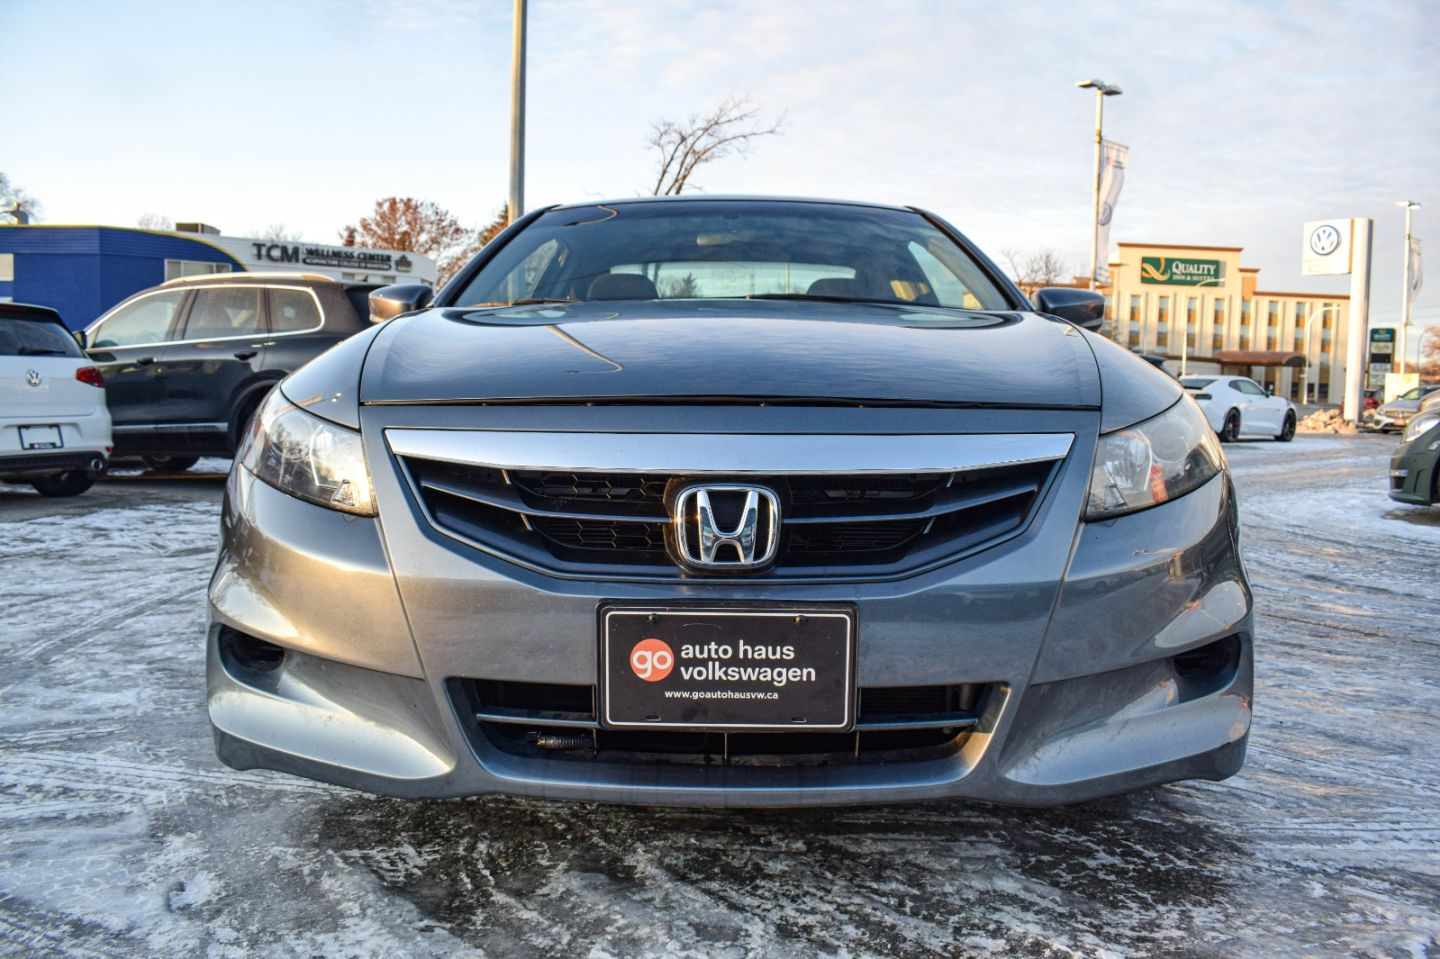 2012 Honda Accord Cpe EX for sale in Winnipeg, Manitoba